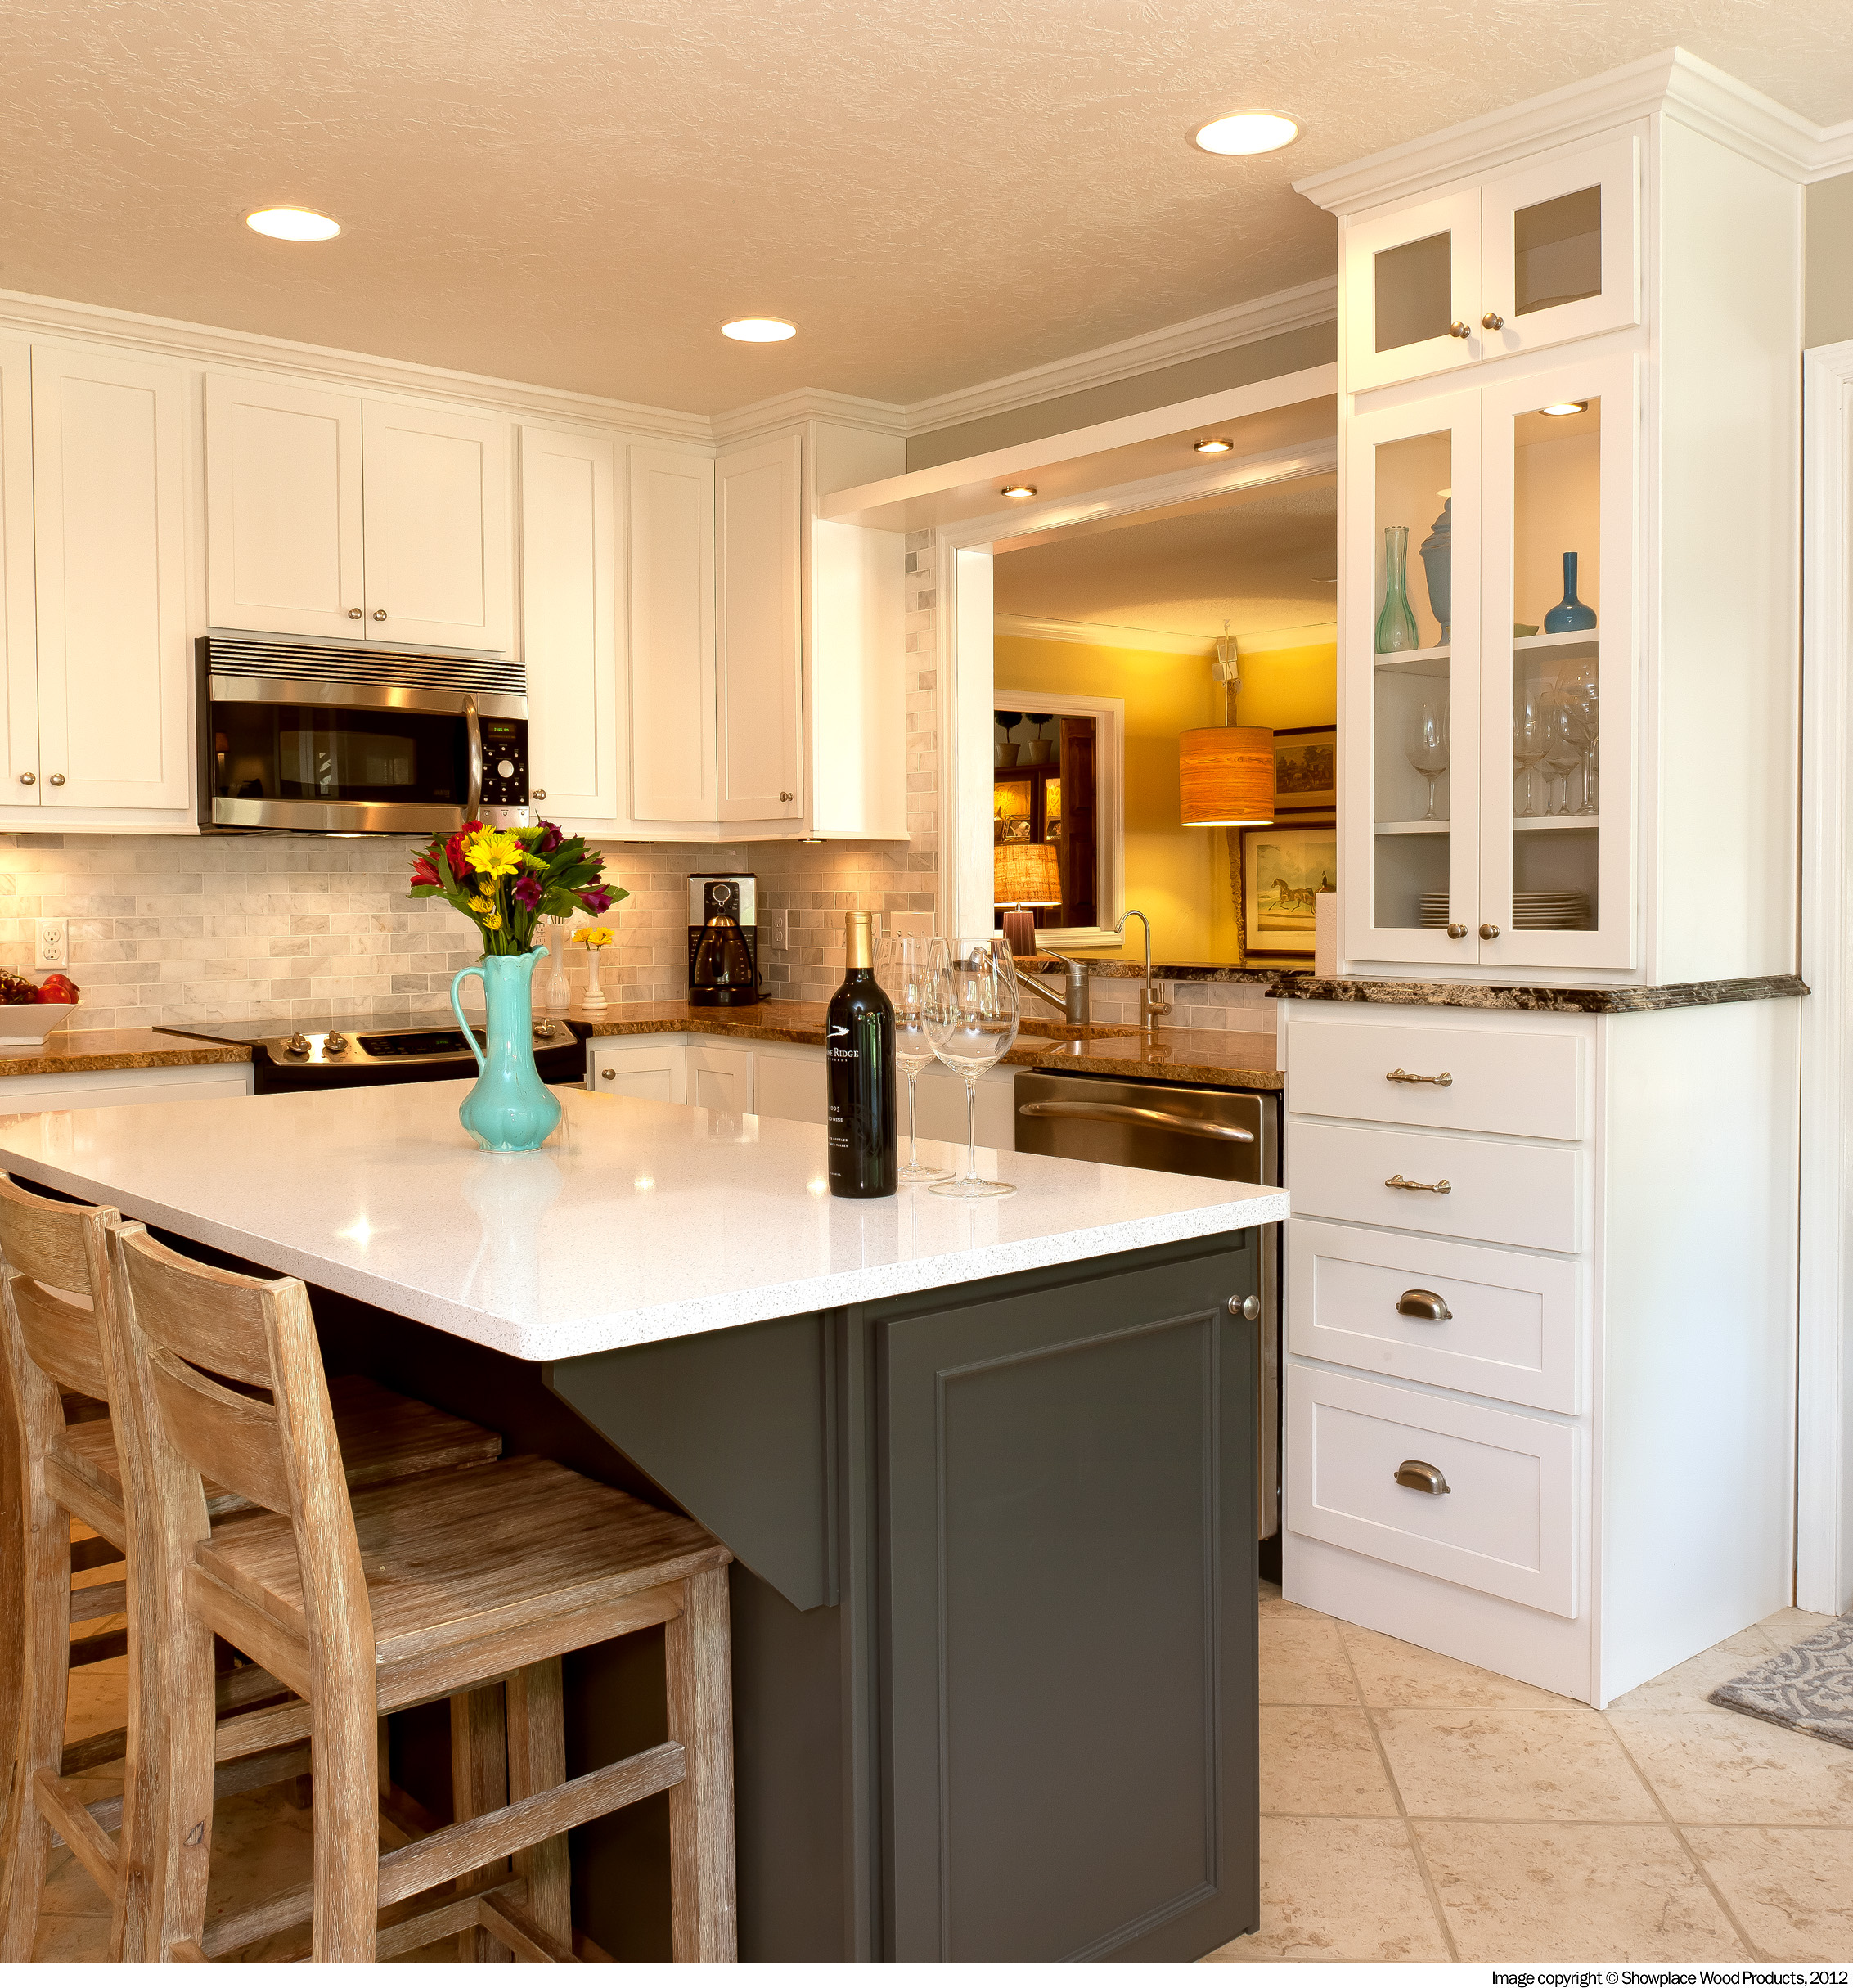 Resurfaced Kitchen Cabinets Before And After Is Cabinet Refacing A Good Option For You Dreammaker